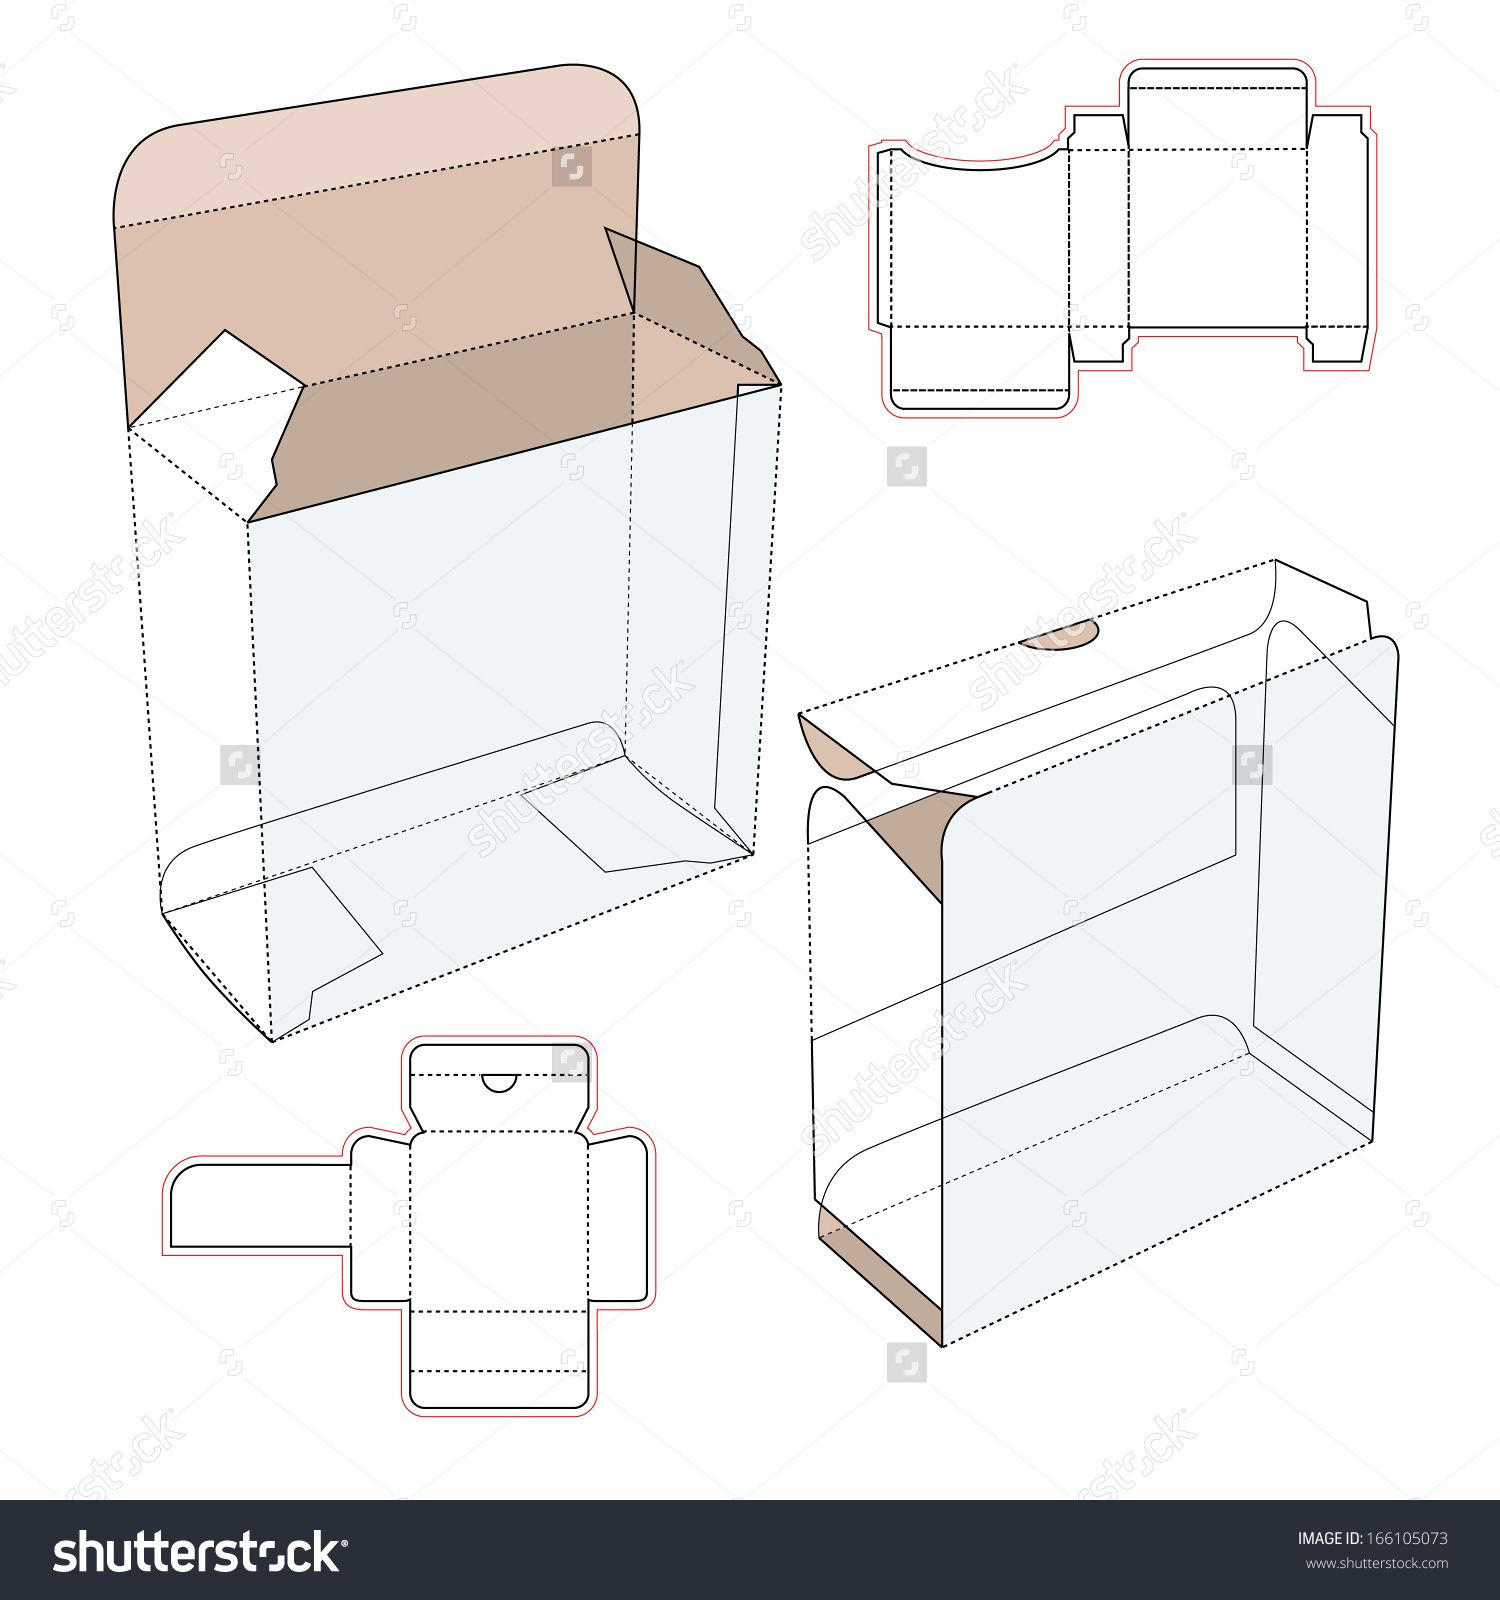 Perfume cardboard box with blueprint template stock vector perfume cardboard box with blueprint template stock vector illustration 166105073 shutterstock malvernweather Image collections